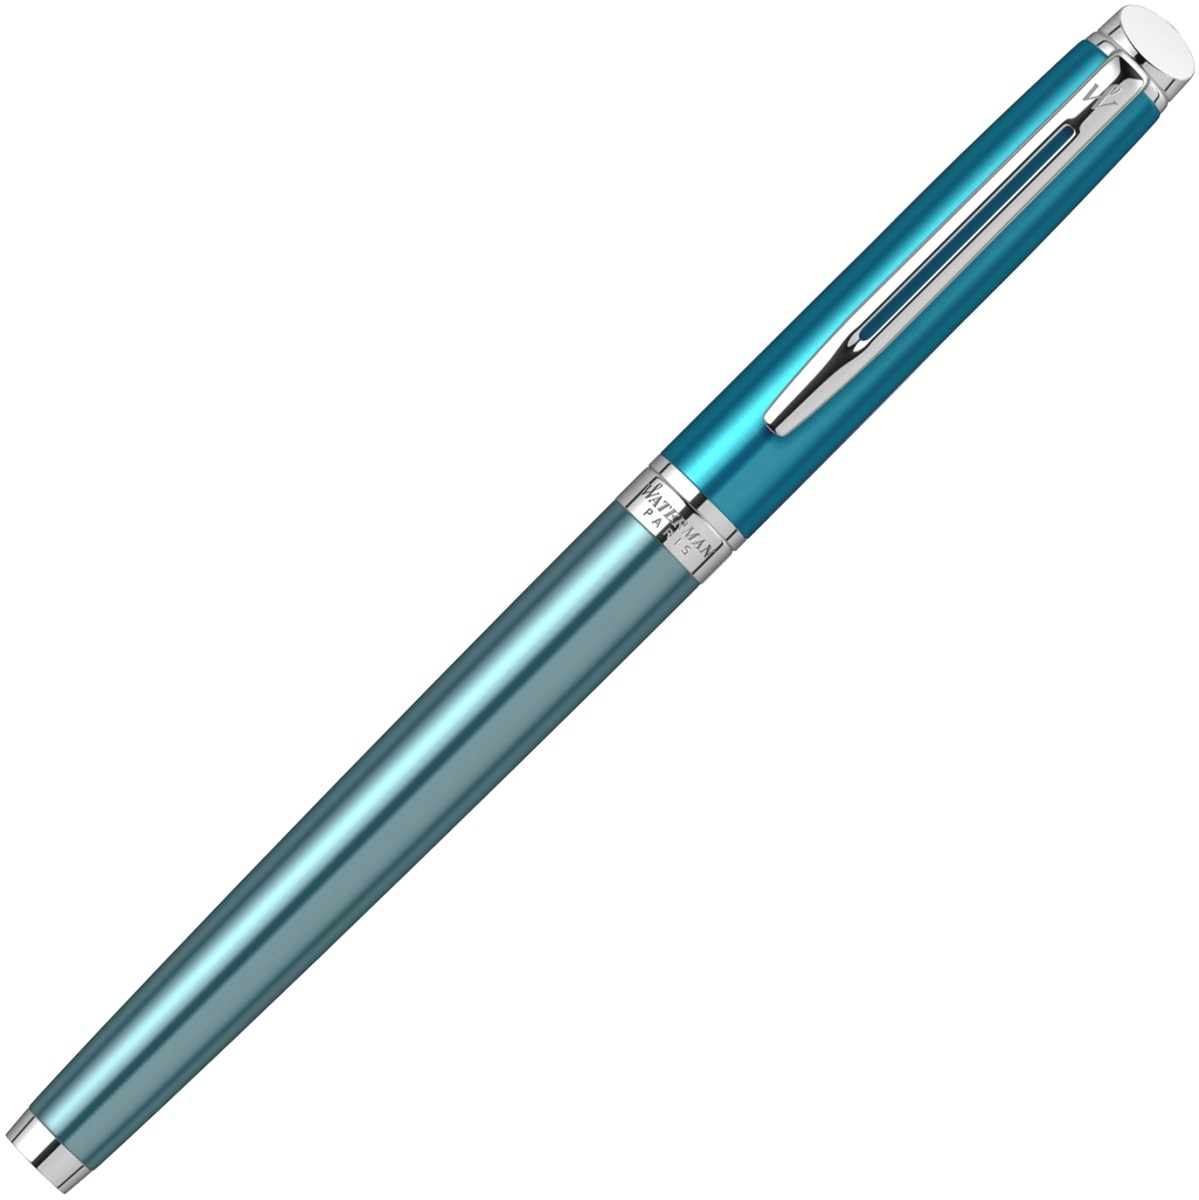 Ручка перьевая Waterman Hemisphere Deluxe 2020, Sea Blue CT (Перо F), фото 4